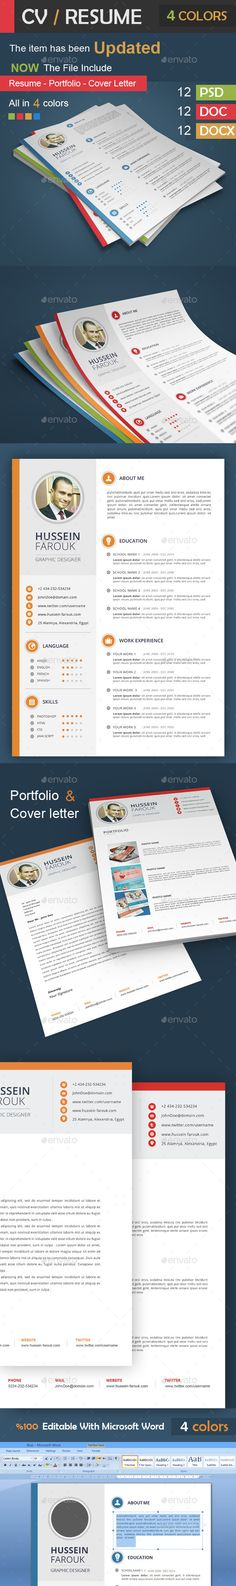 Resume is simple and clean, easy to be edited and designed to make such a good impression. Resume will help you to stand out and get hired.